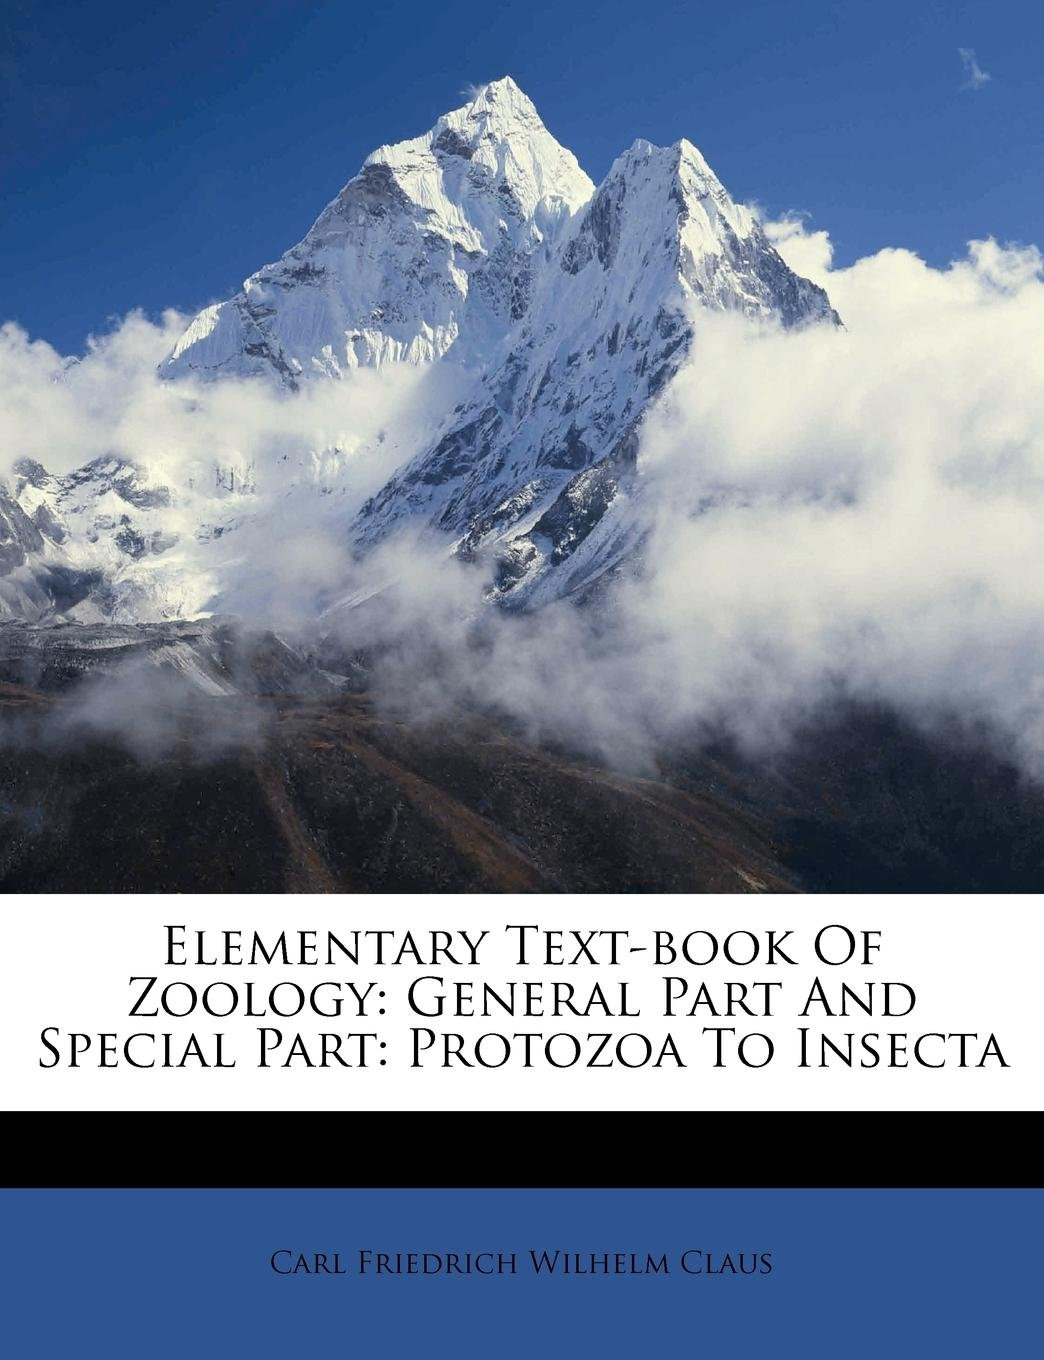 Elementary Text-book Of Zoology: General Part And Special Part: Protozoa To Insecta PDF